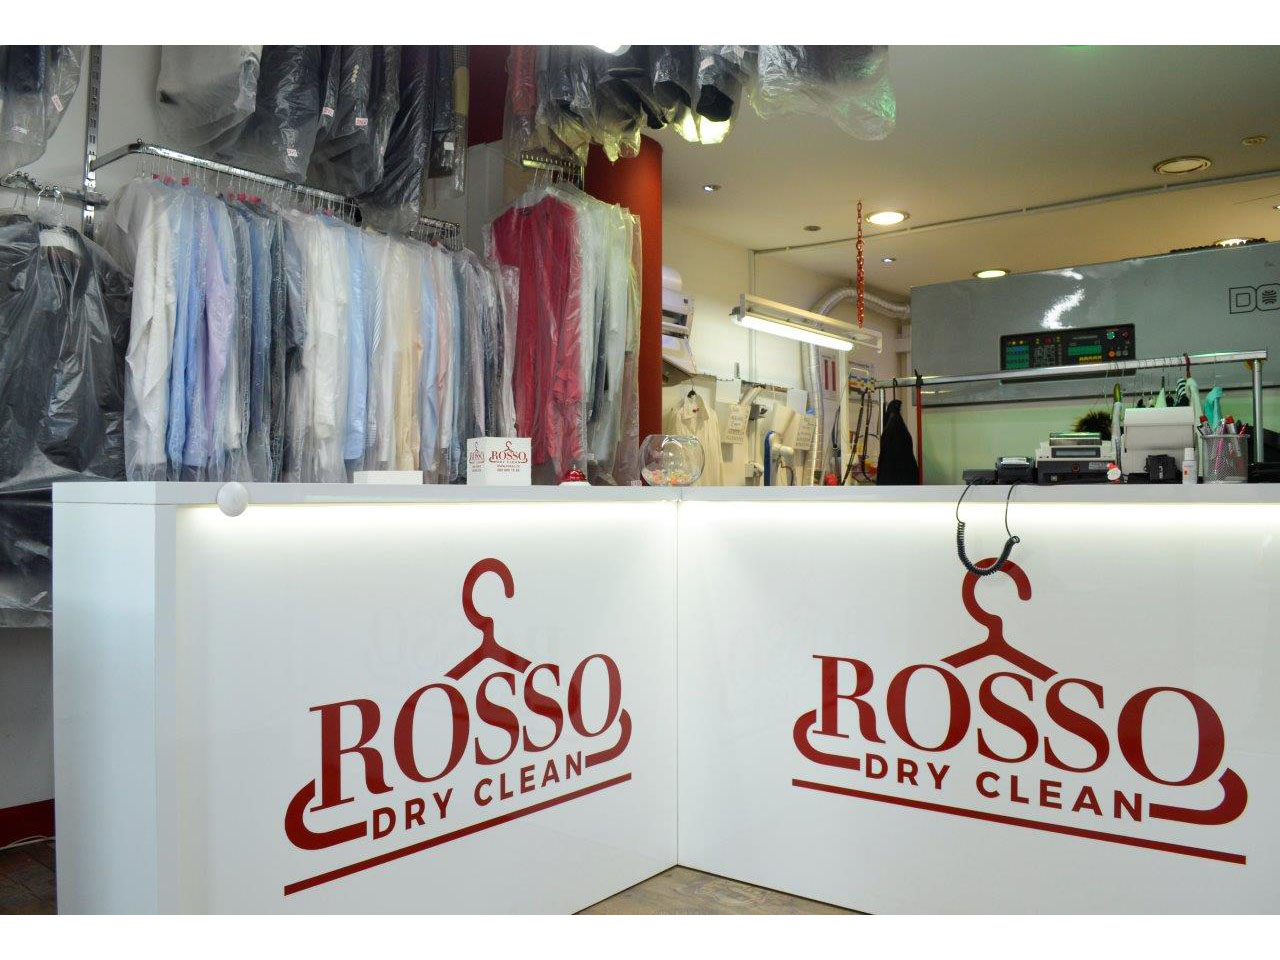 ROSSO DRY CLEANING Dry-cleaning Beograd